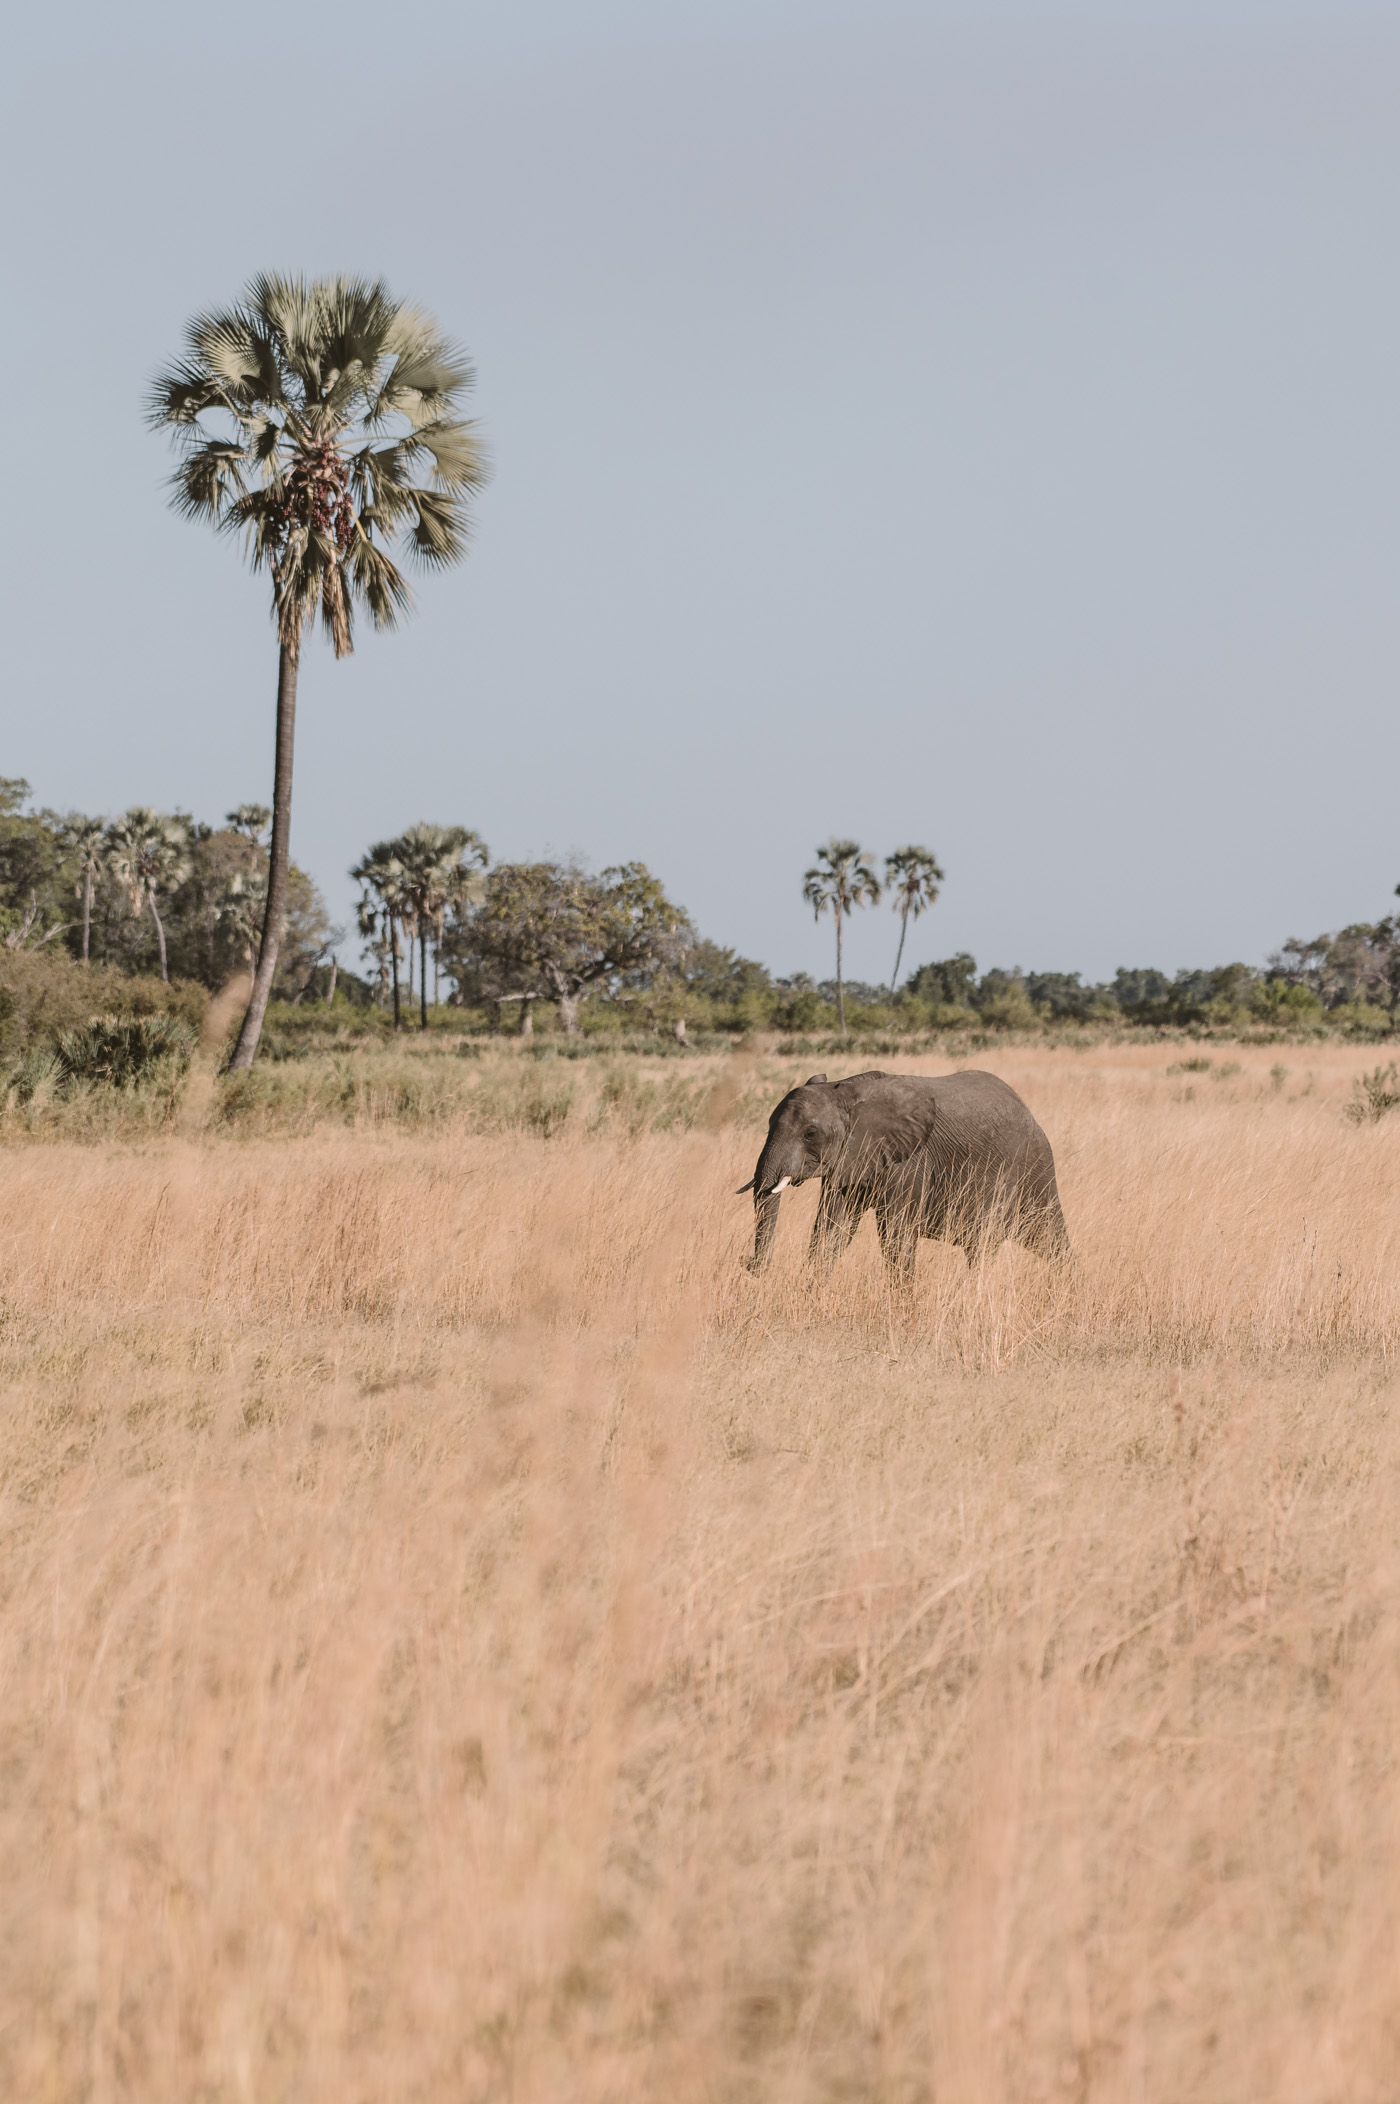 Elephant in the Okavango Delta in Botswana